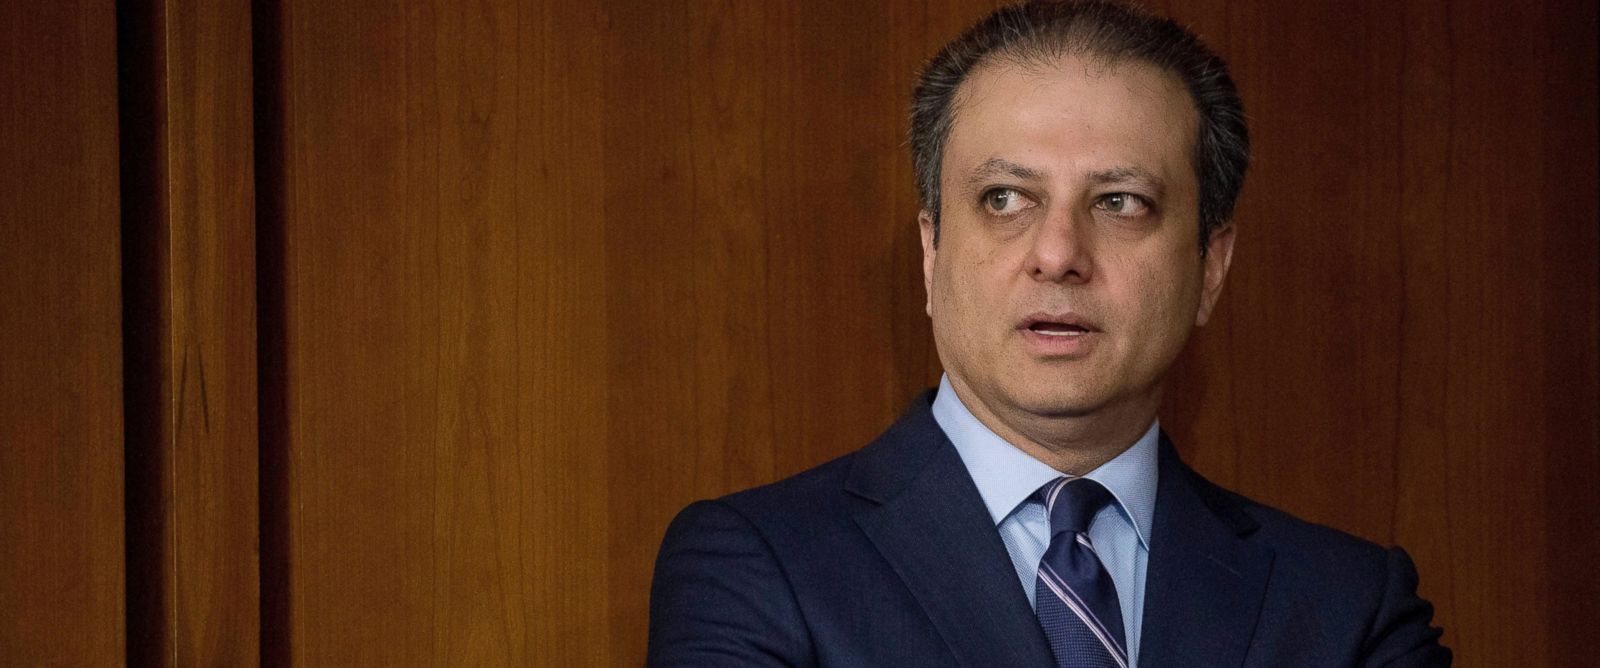 PHOTO: Former United States Attorney General for the Southern District of New York Preet Bharara arrives before former FBI director James Comey testifies at a Senate Intelligence Committee hearing on Capitol Hill, June 8, 2017, in Washington.